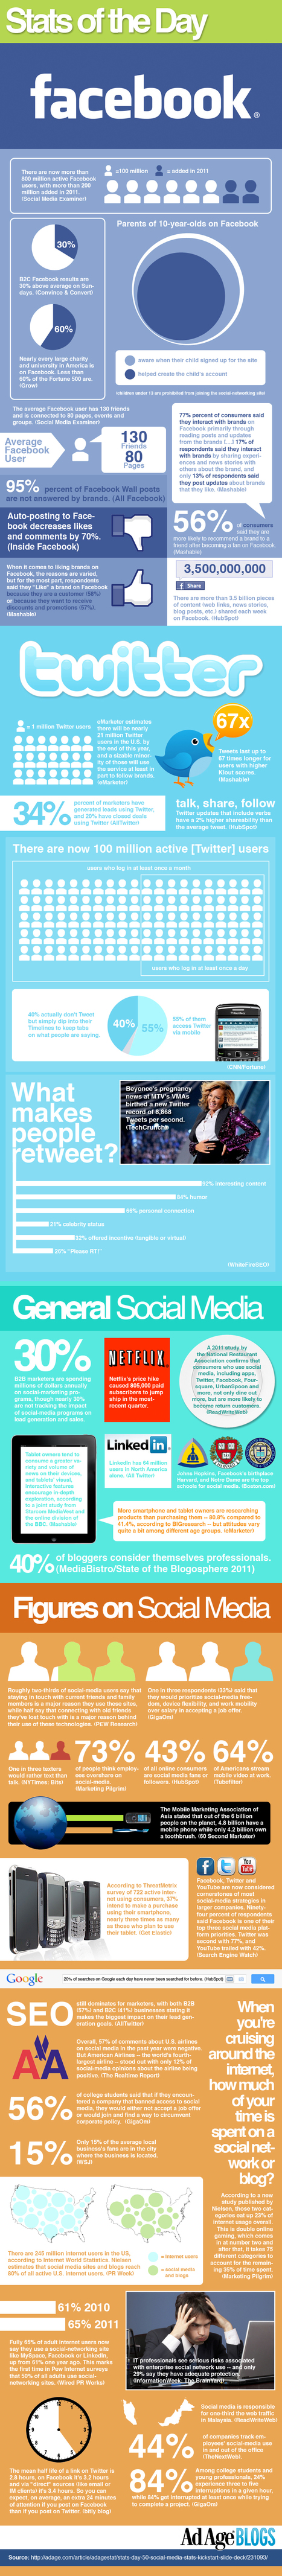 Social Media Statistics of the Day | Internet Marketing Blog | Social Media Buzz | Scoop.it